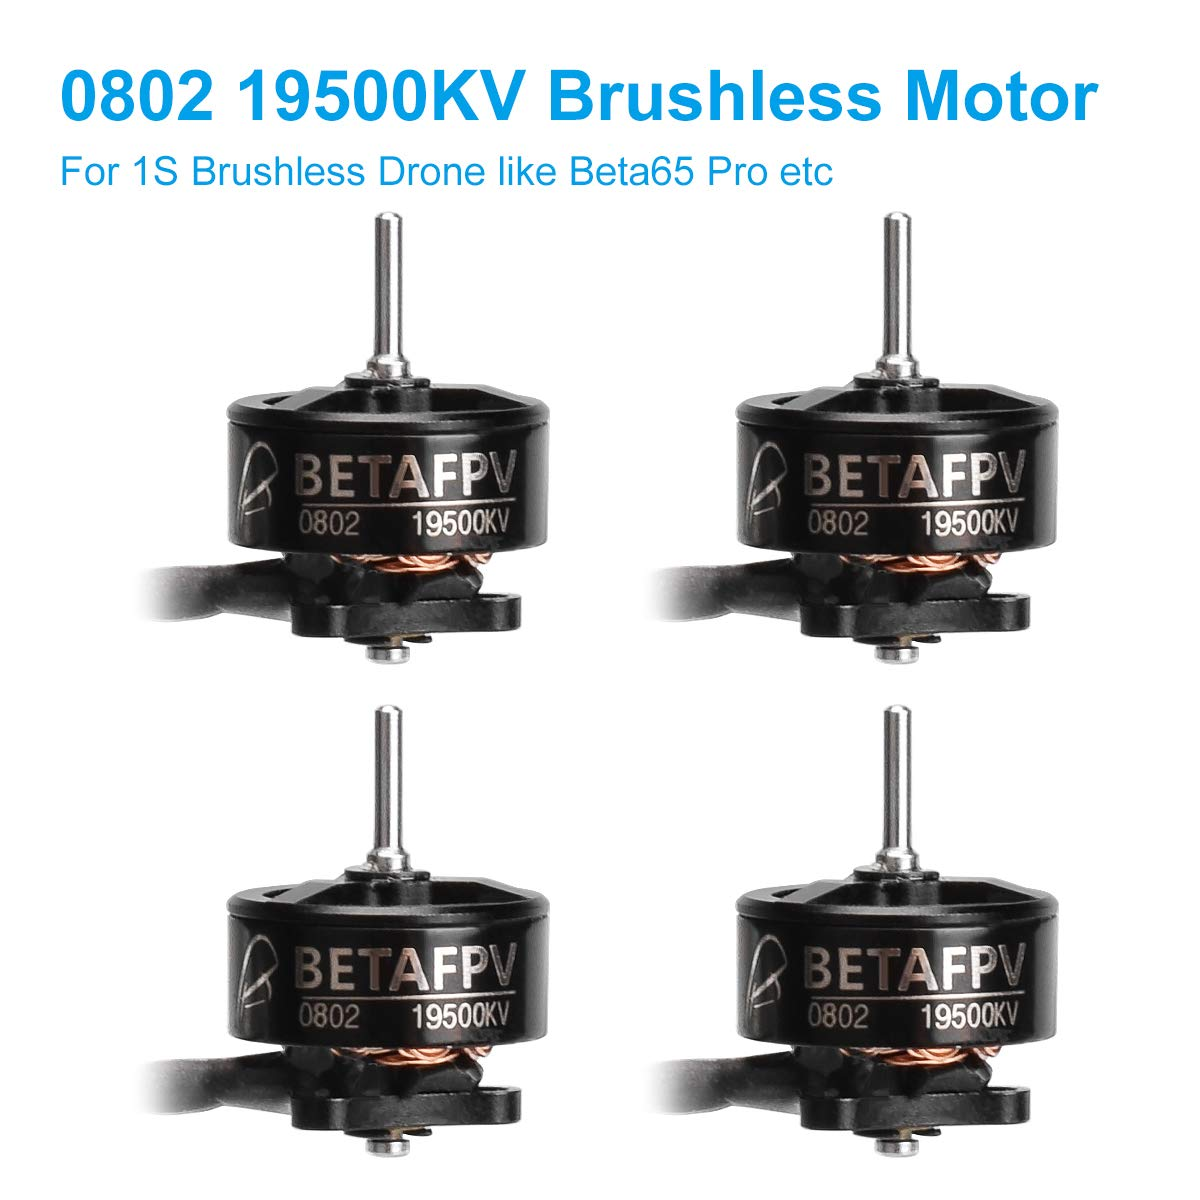 BETAFPV 4pcs 0802 19500KV Brushless Motors for FPV Racing Tiny Whoop 1S Brushless Drone Like Beta65 pro